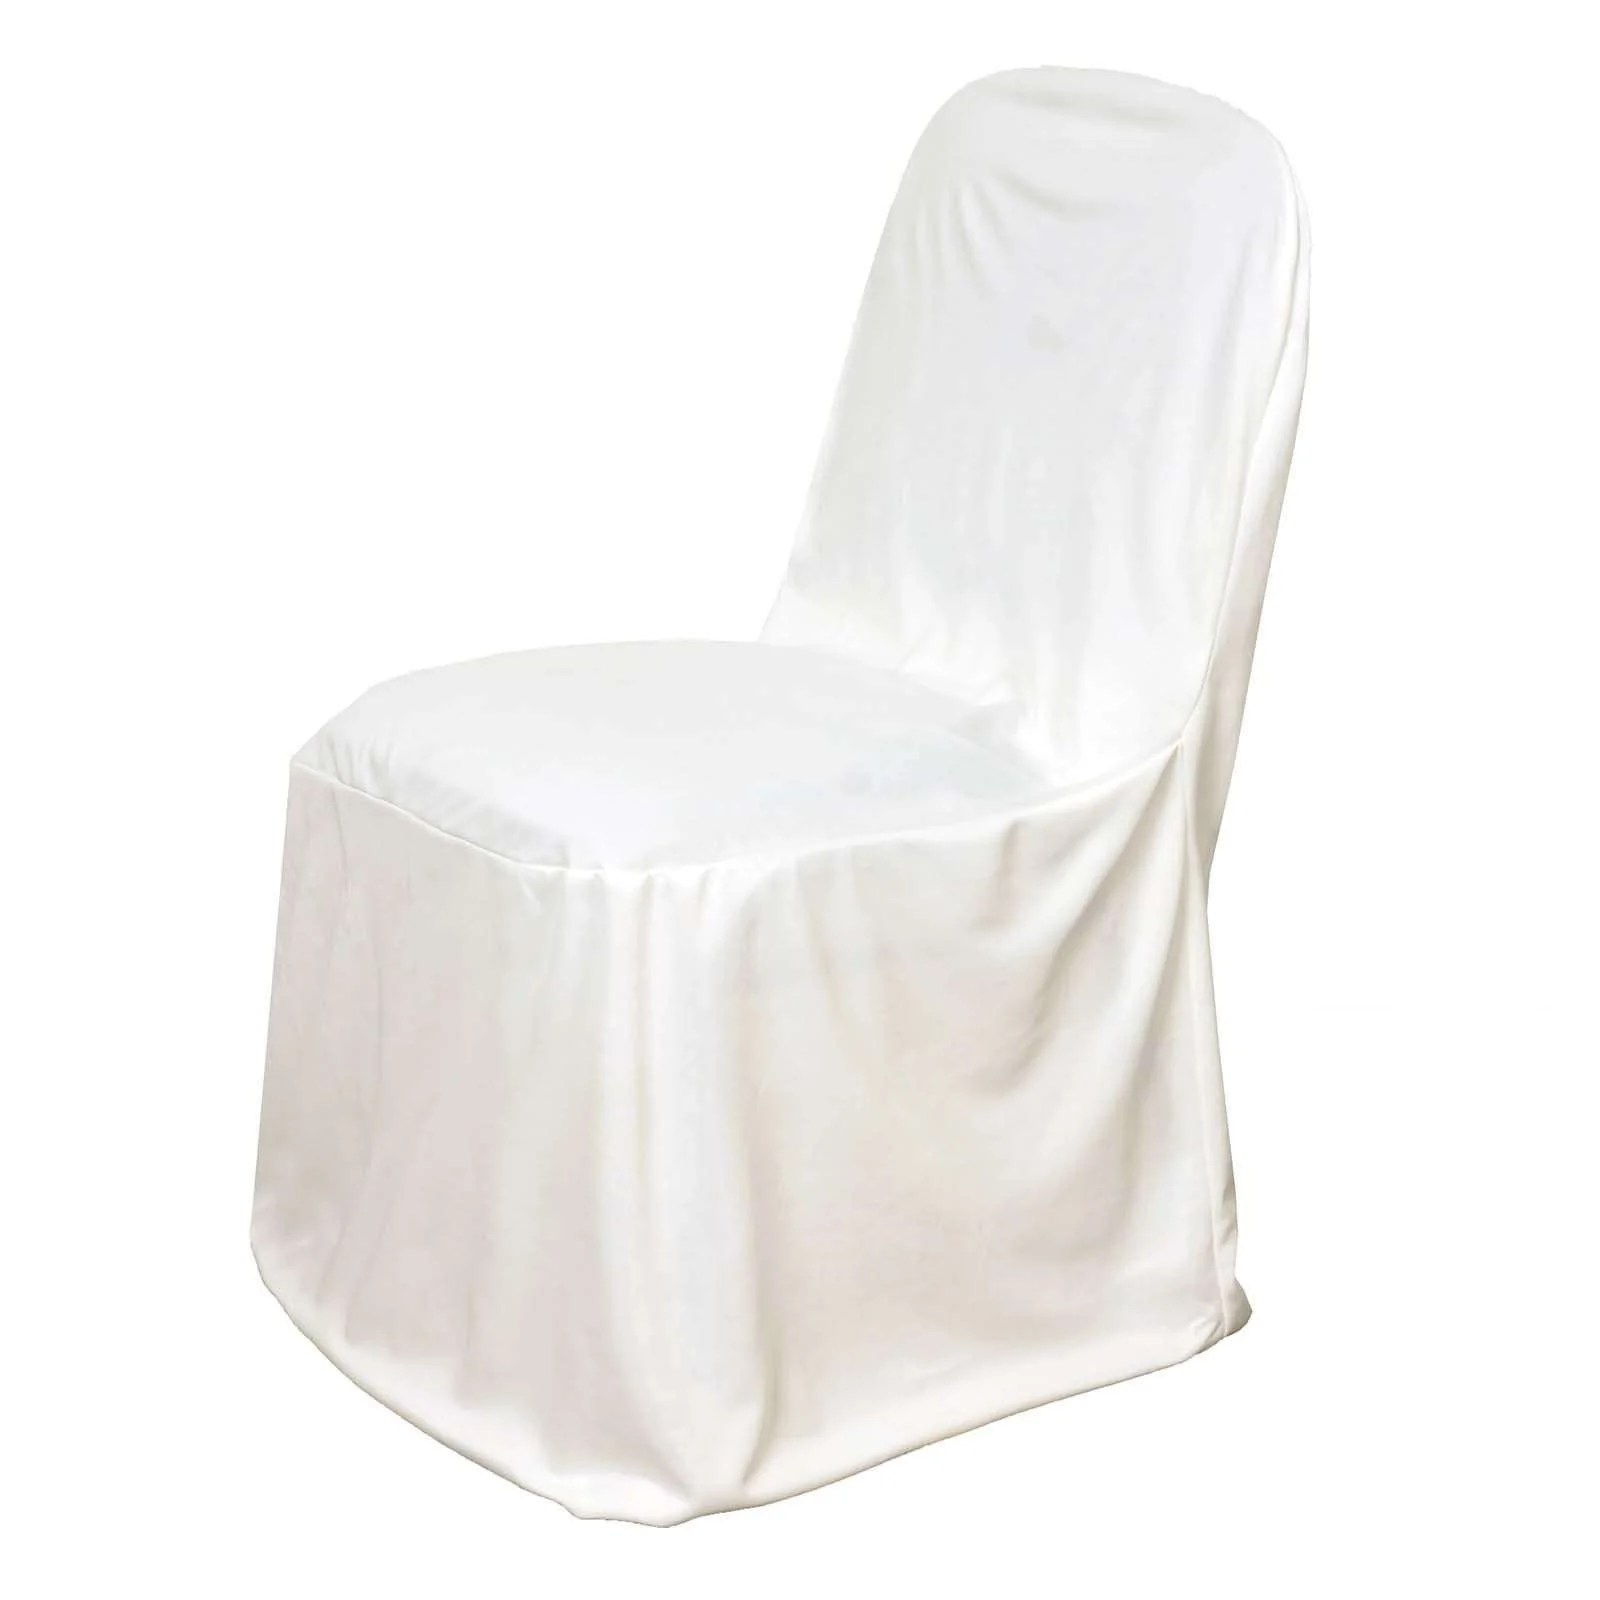 chair covers decorations fishing canada ivory stretch scuba cover for banquet wedding party